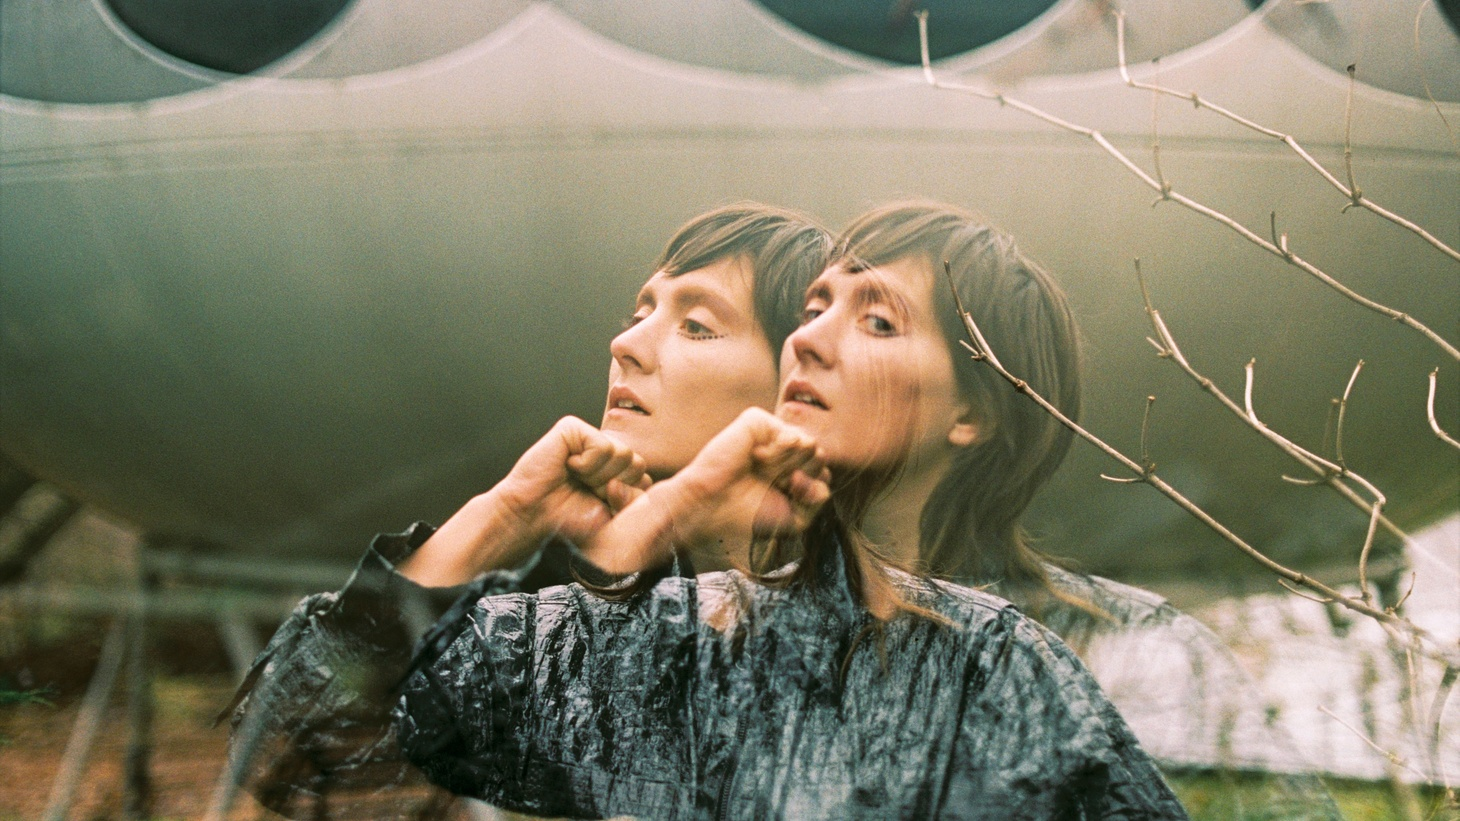 Backed by Warpaint drummer Stella Mozgawa, Cate Le Bon kick starts the year with a new EP.